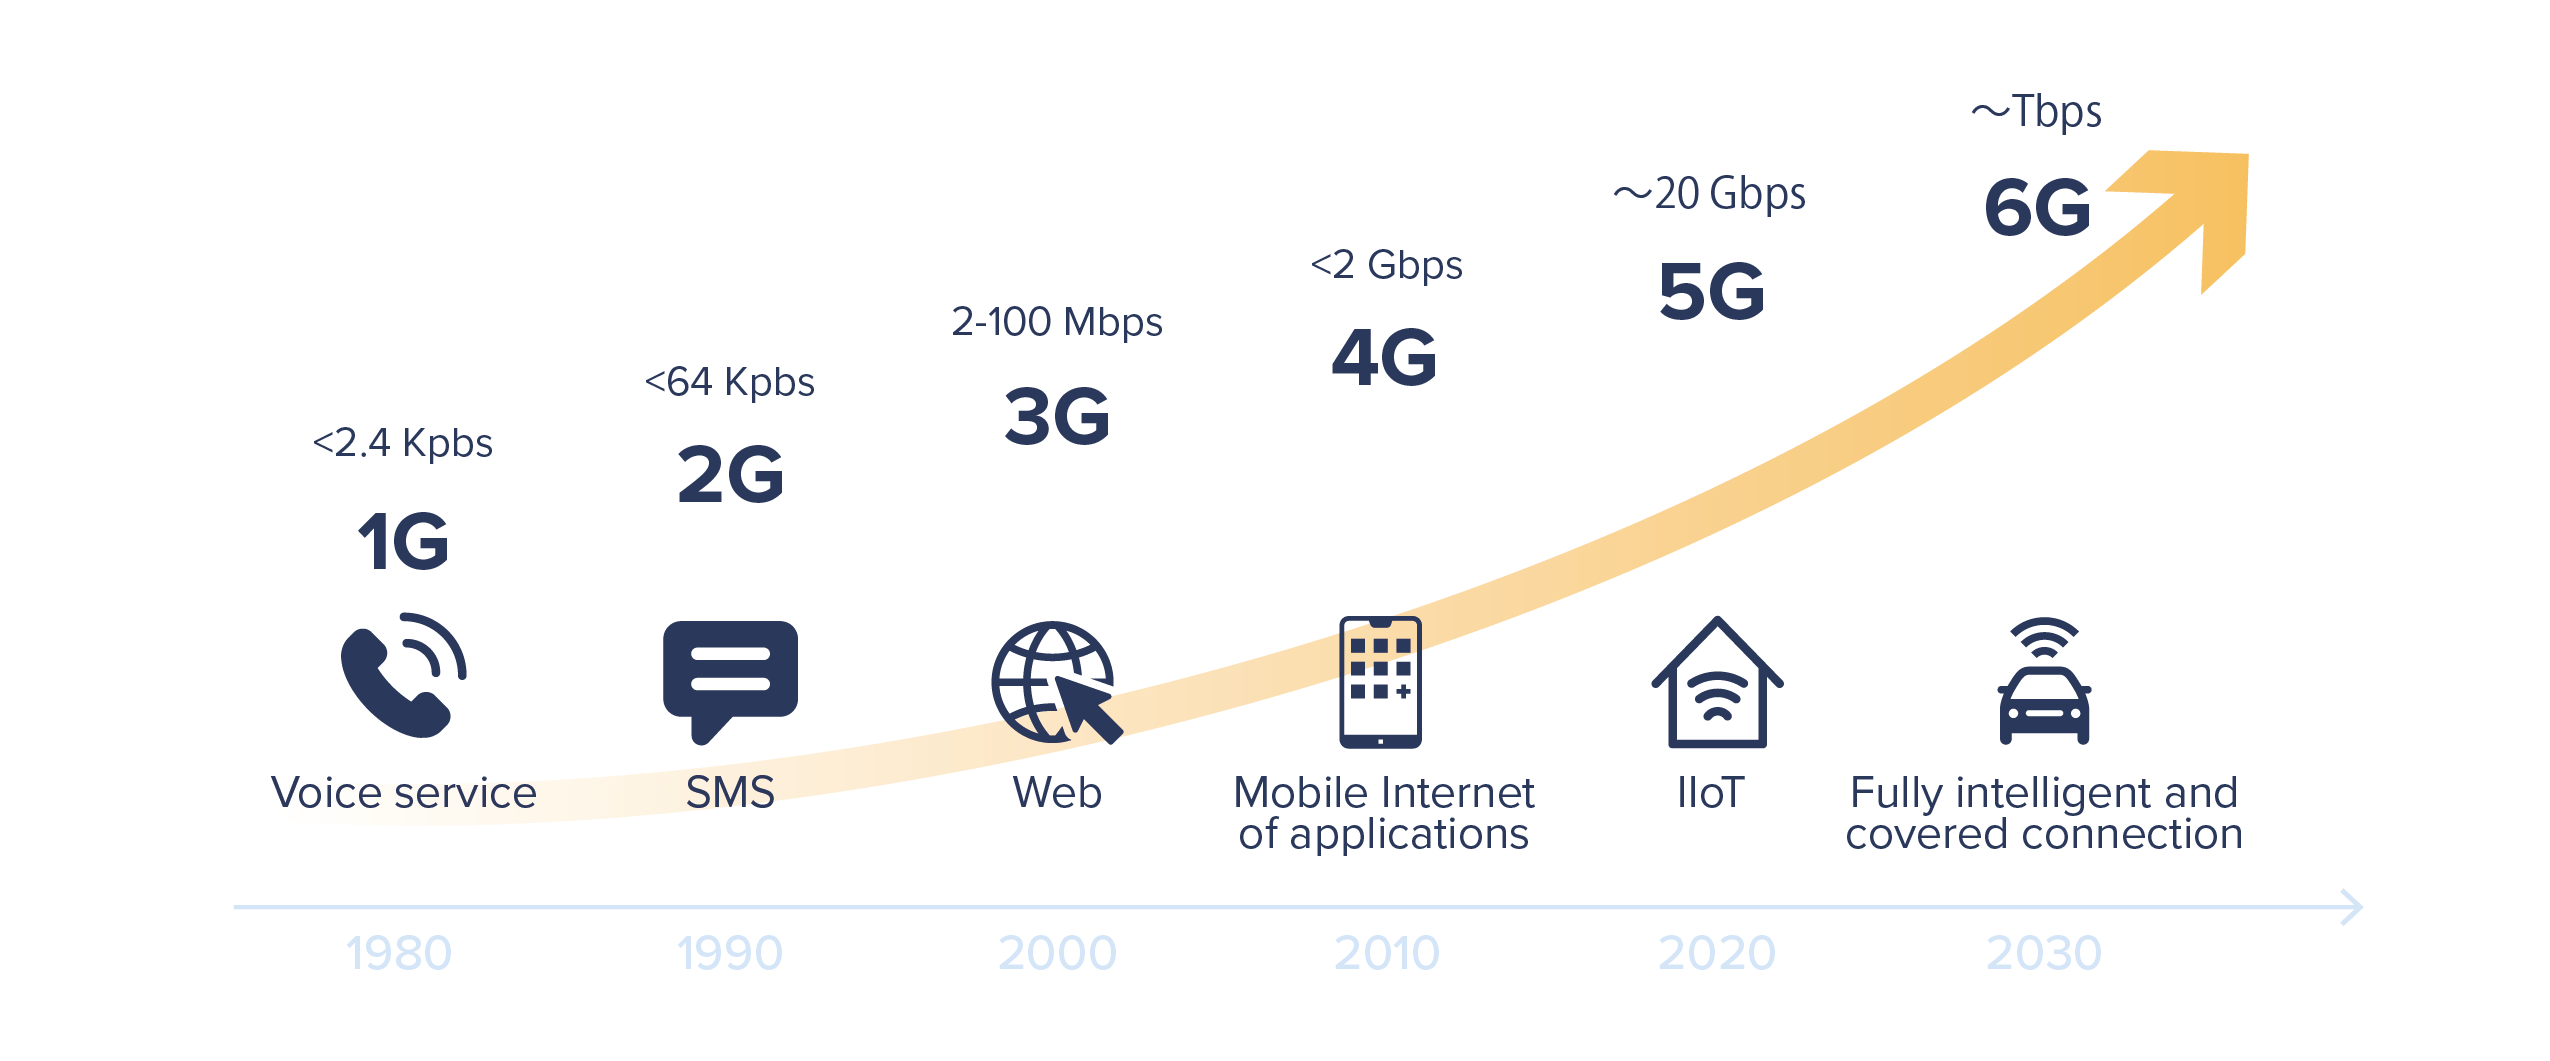 Figure 1. Example of 5G network architecture